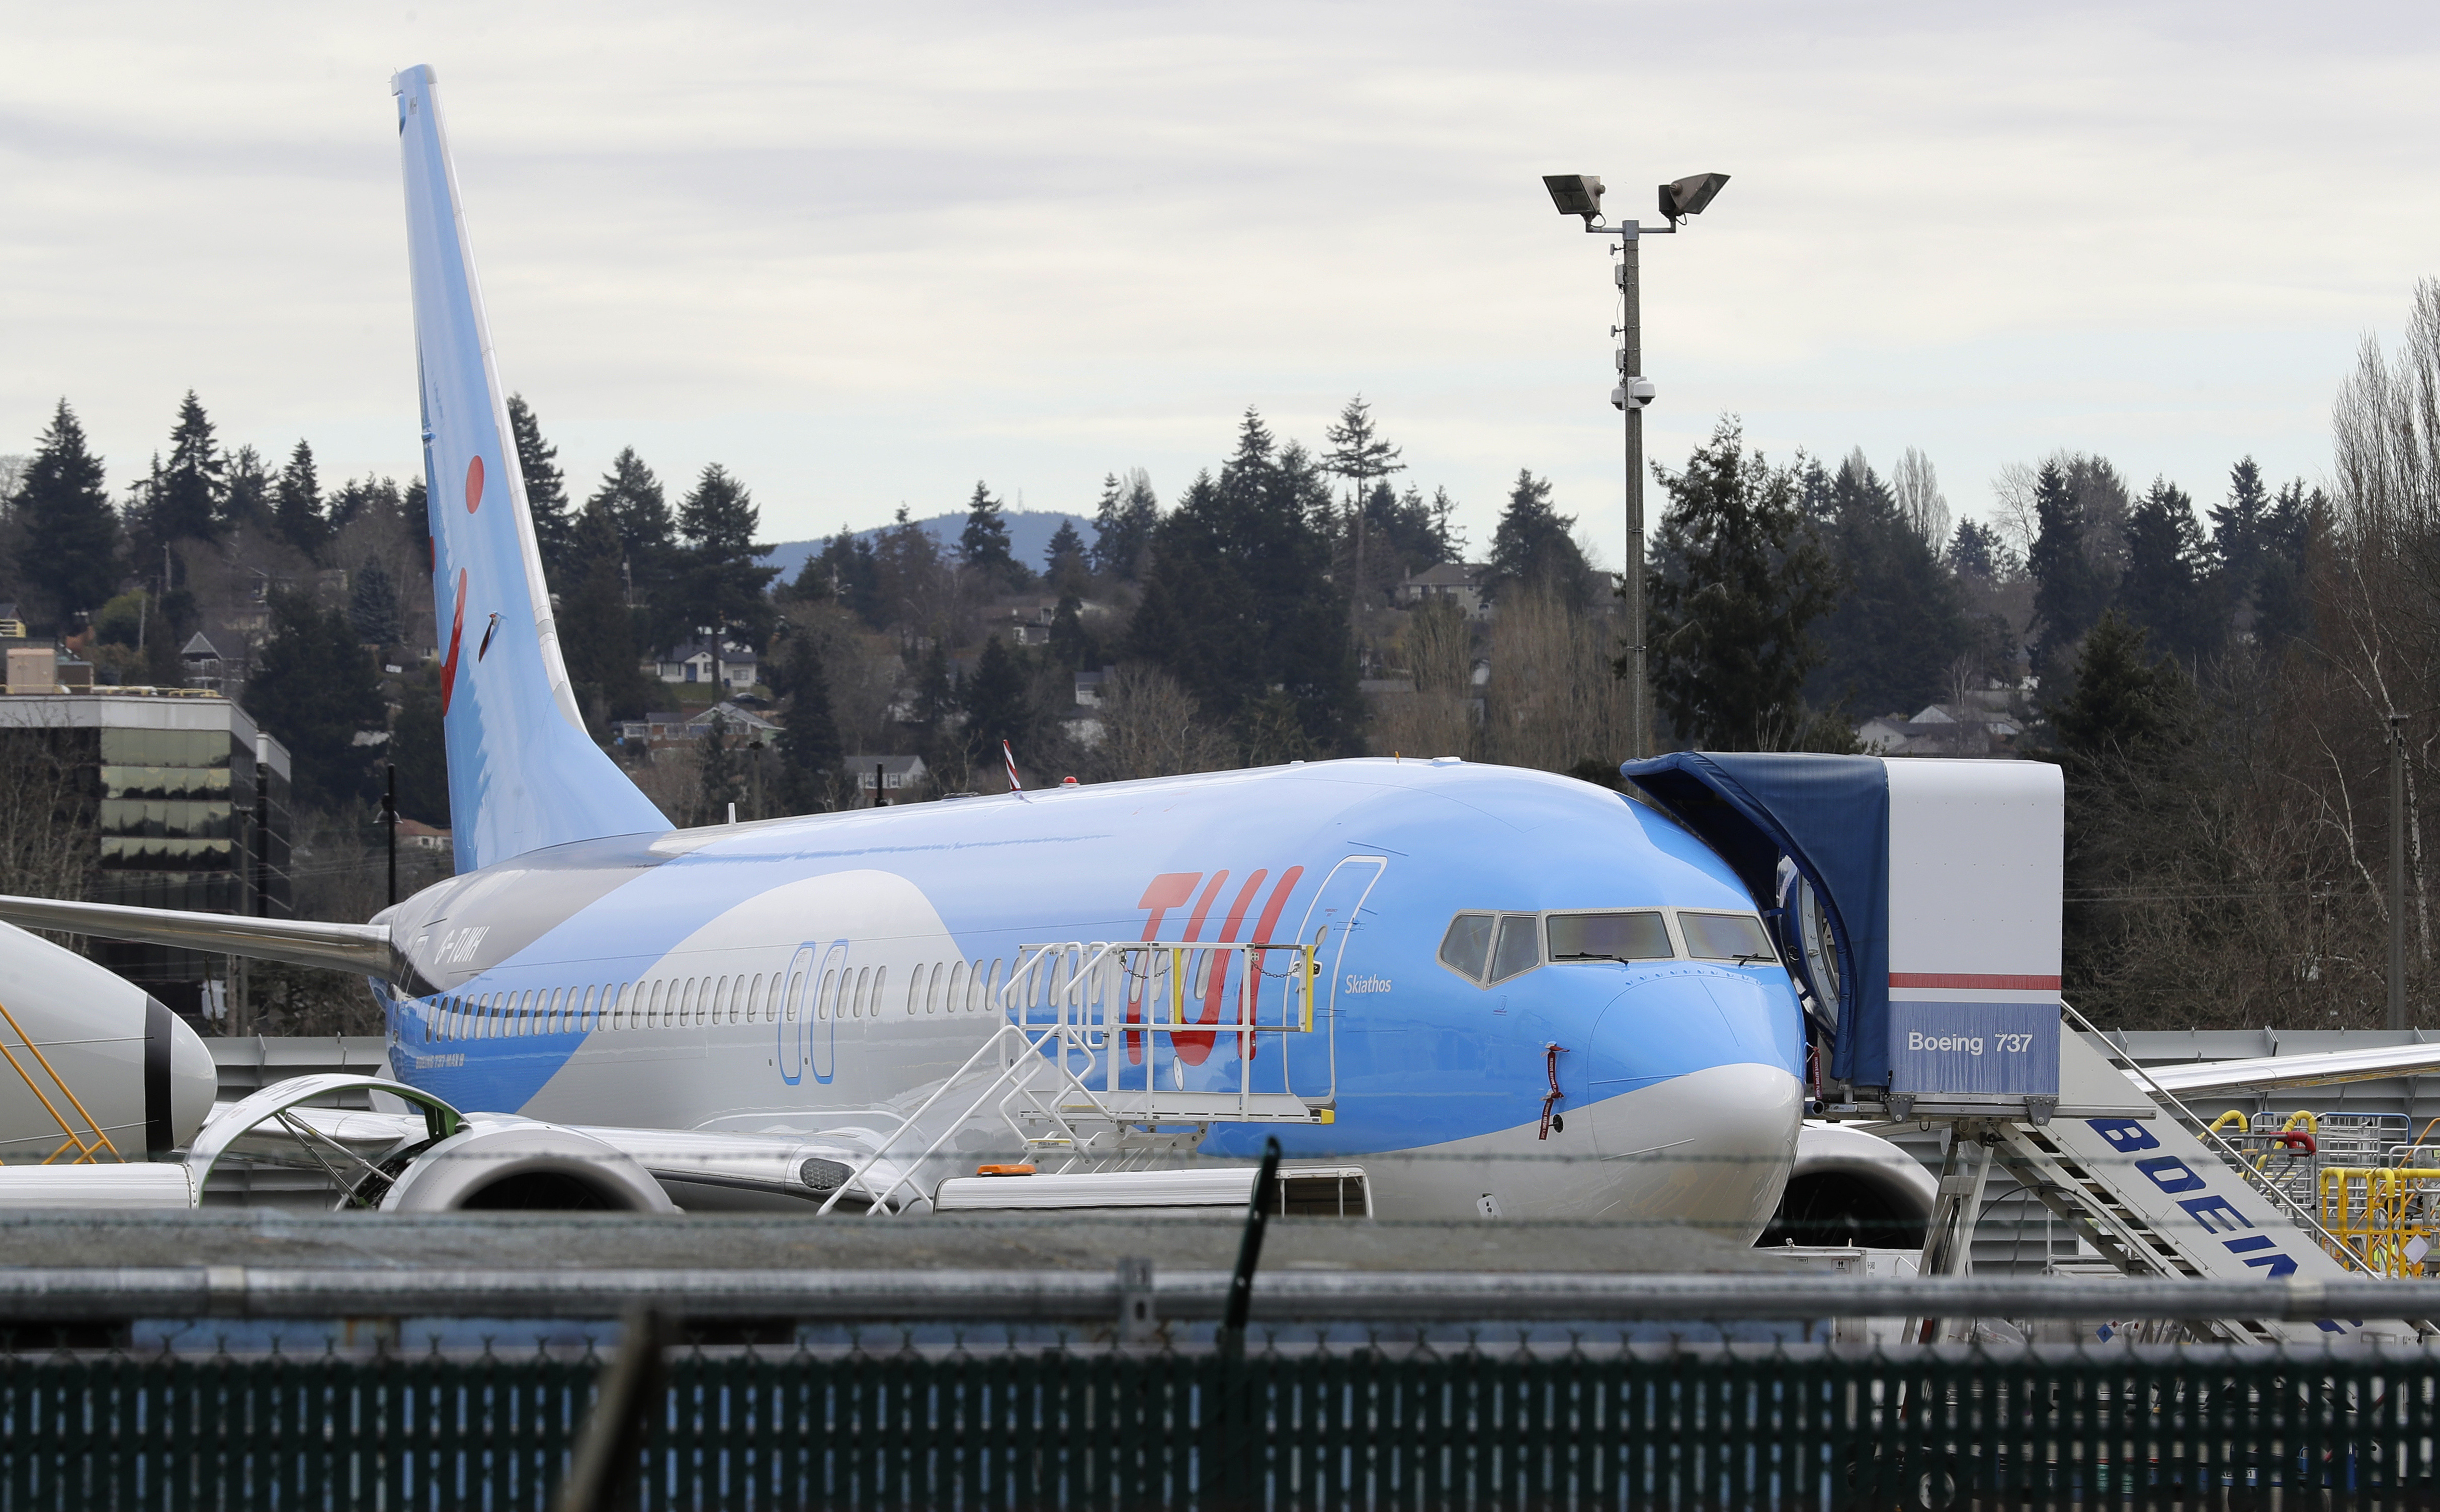 U S  pilots report issues with Boeing 737 Max 8 - Washington Times